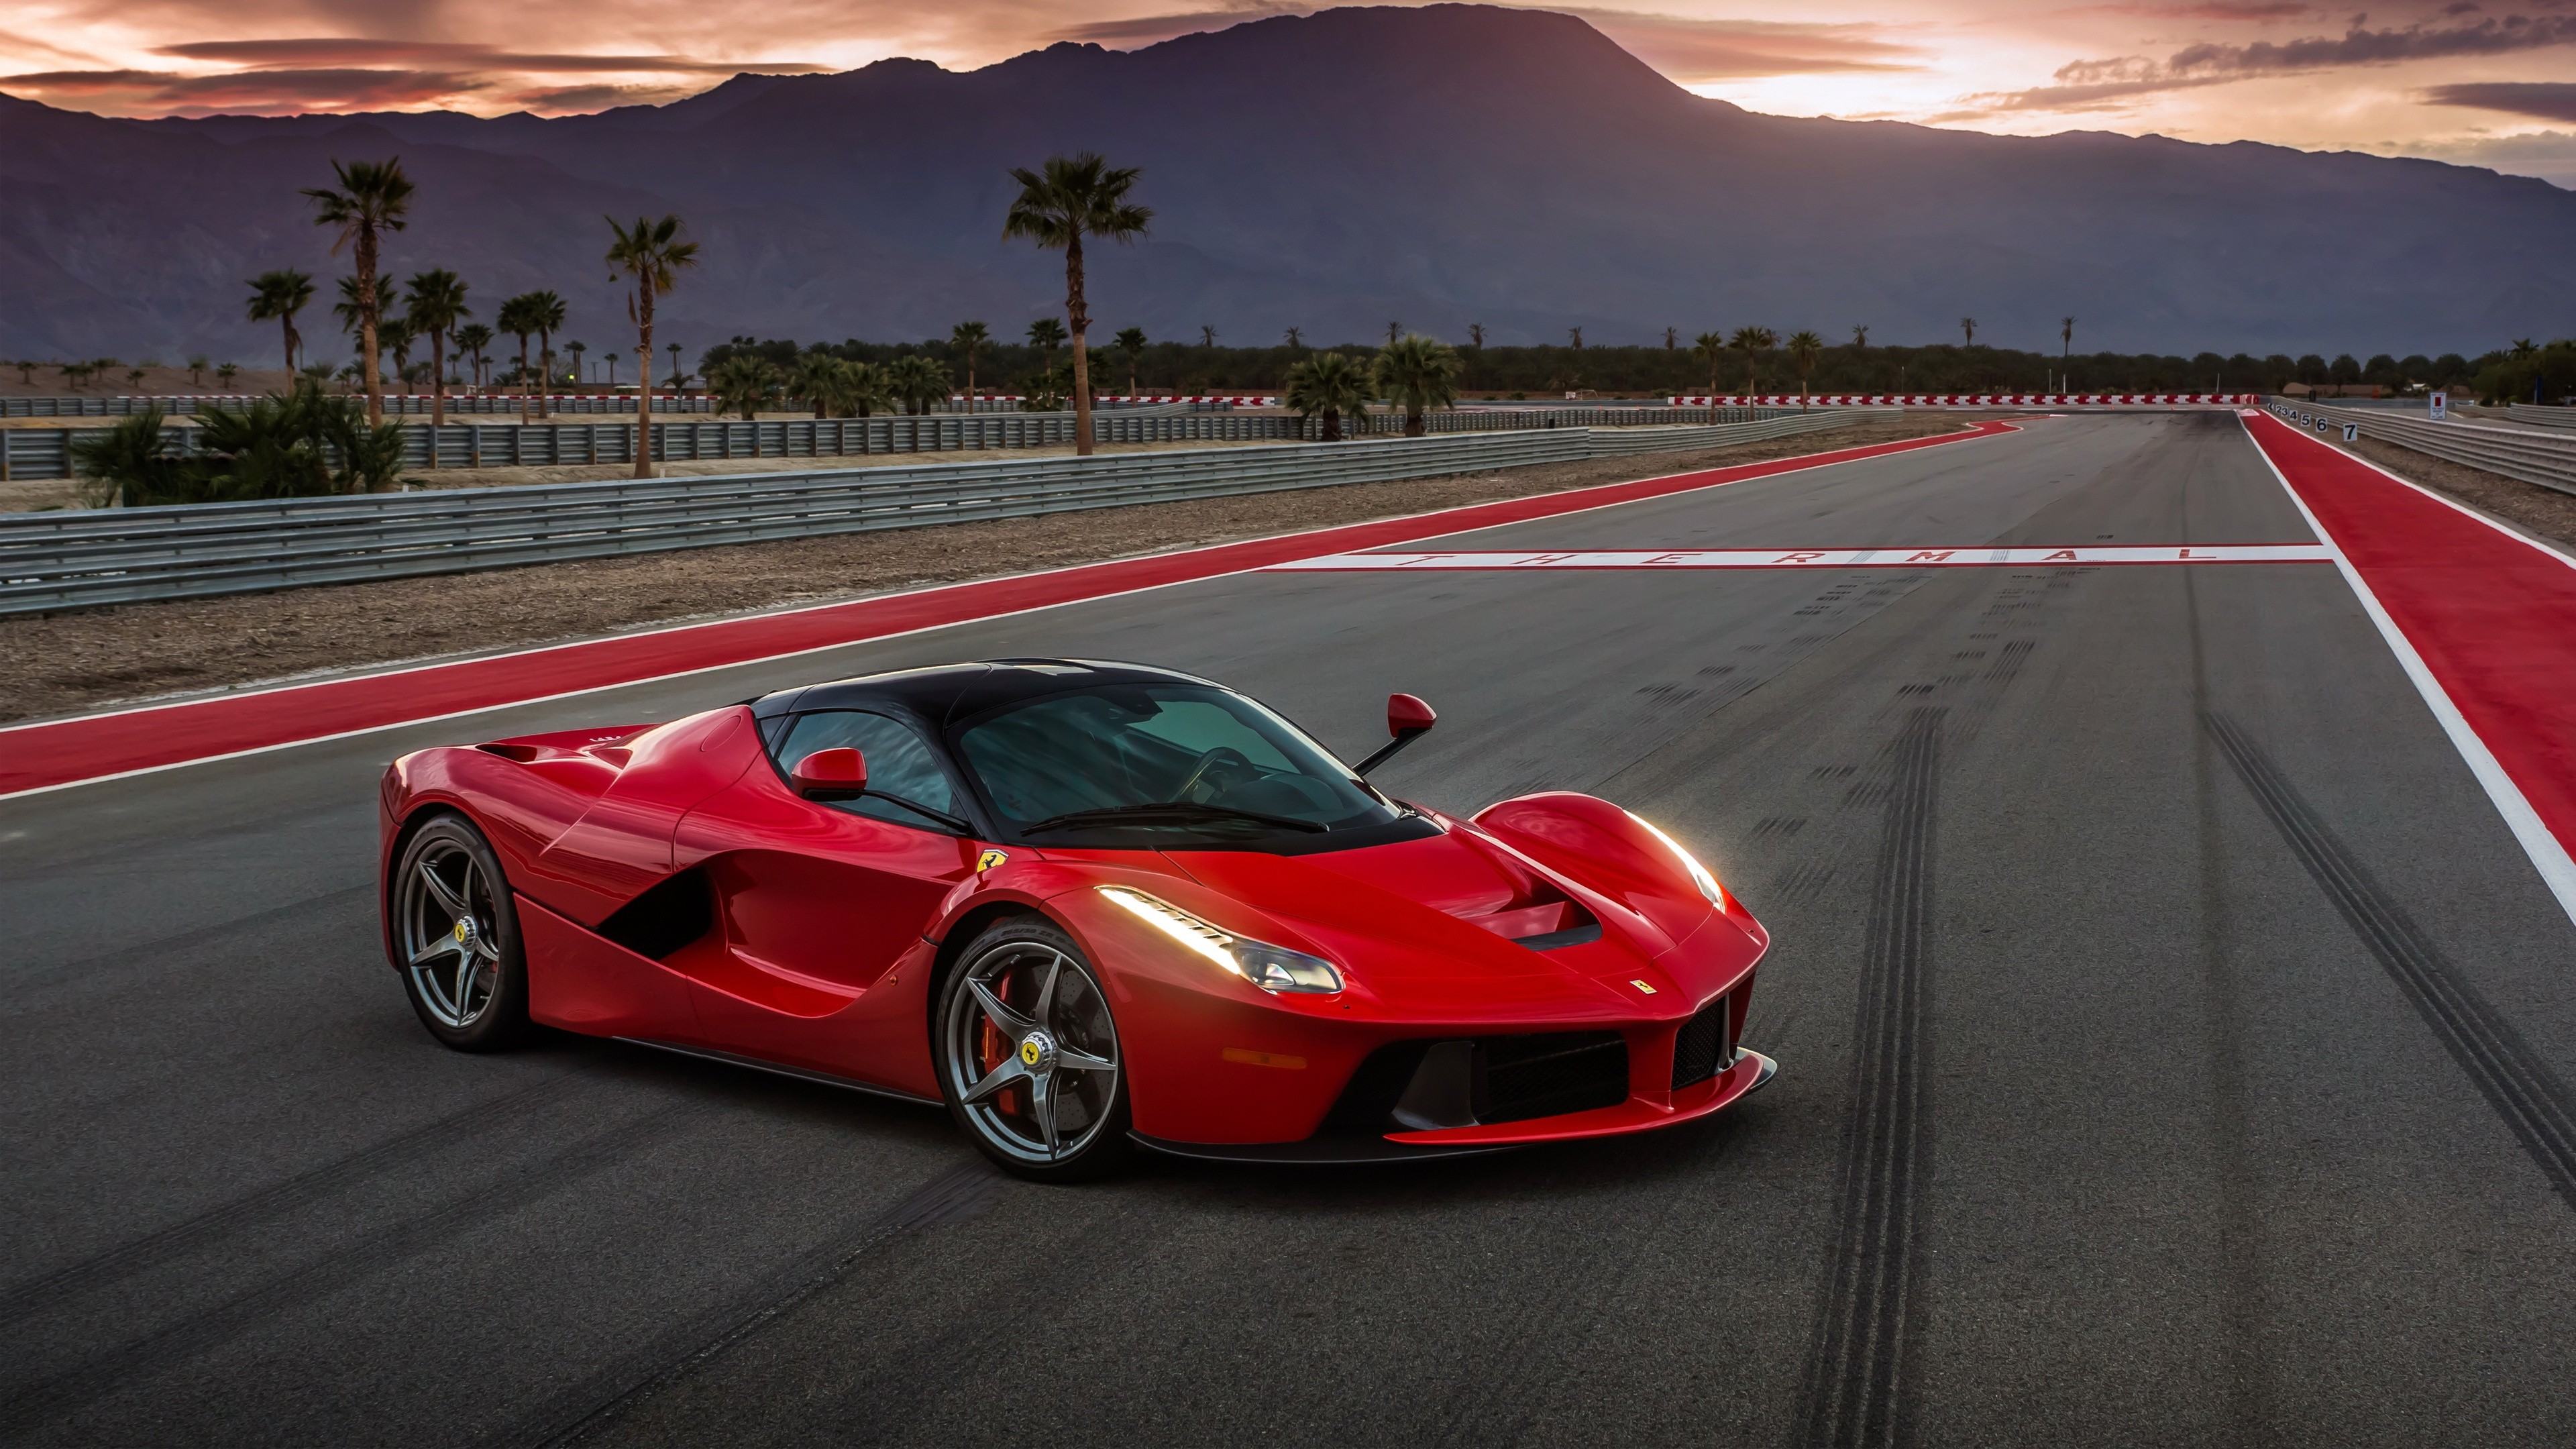 Wallpaper Ferrari Laferrari, Supercar, Sport Cars, Red